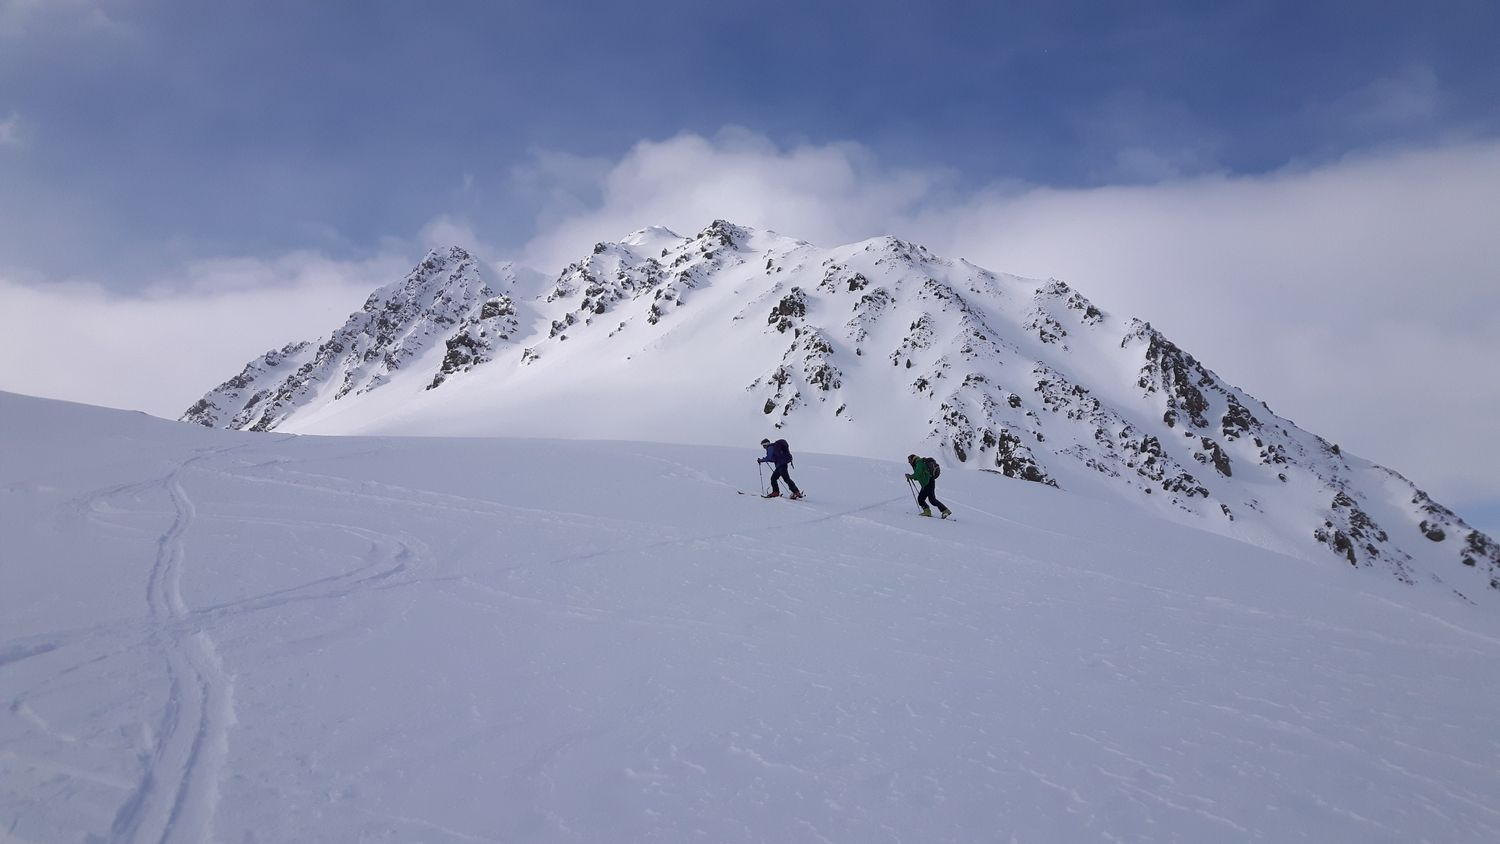 February: ski-touring in the Ecrins National Park, France